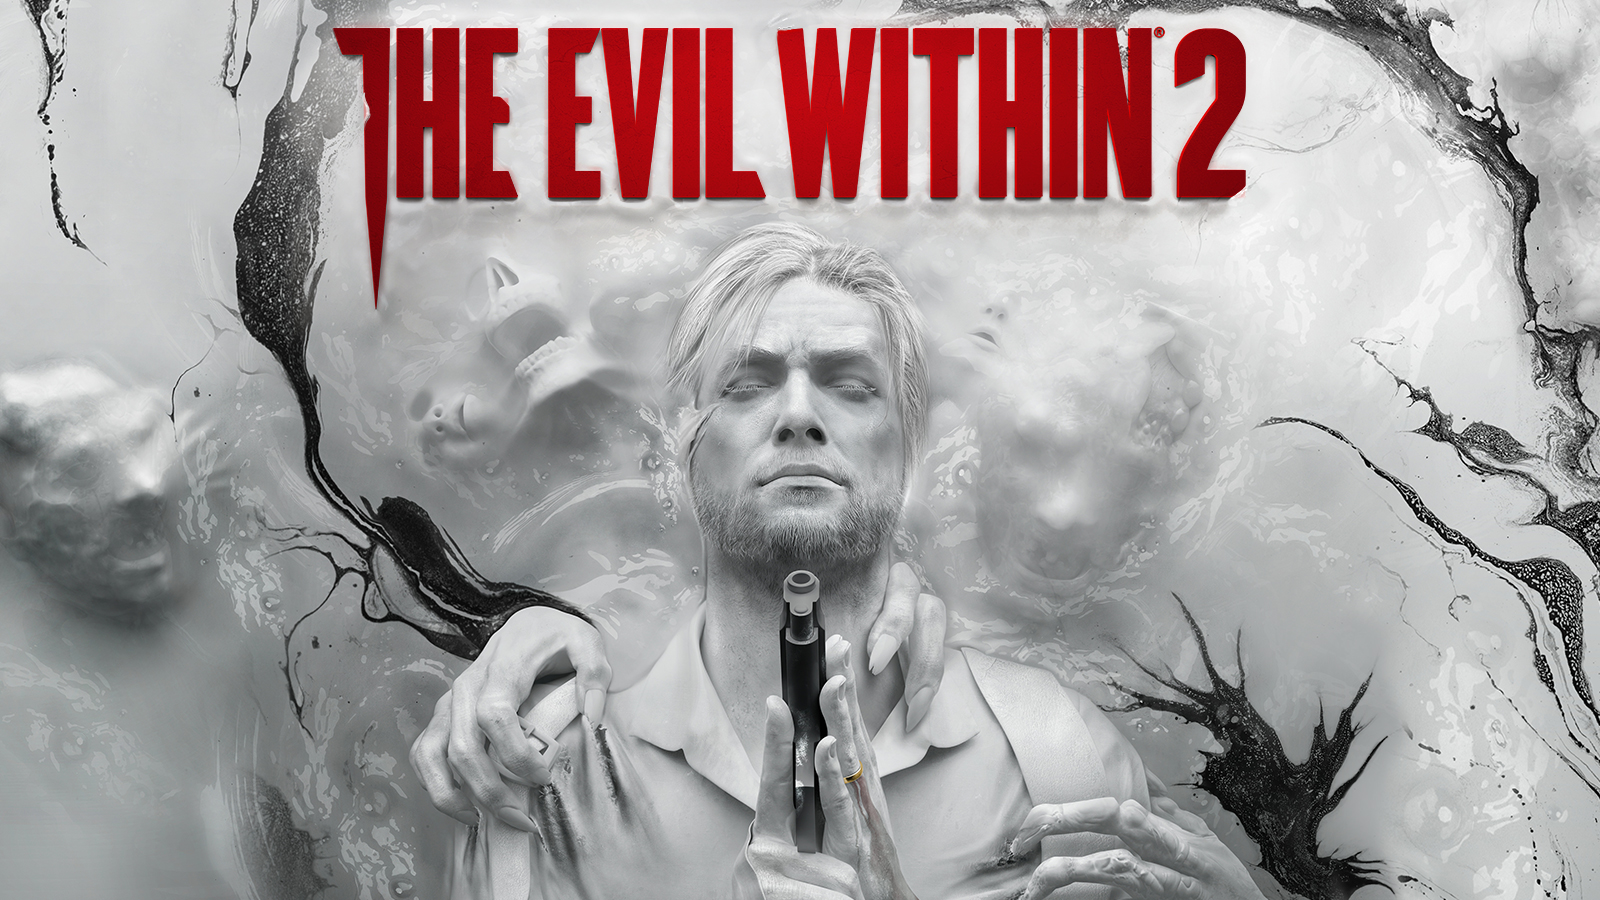 Review | The Enemy Within 2 (PC, PS4, XBox One)